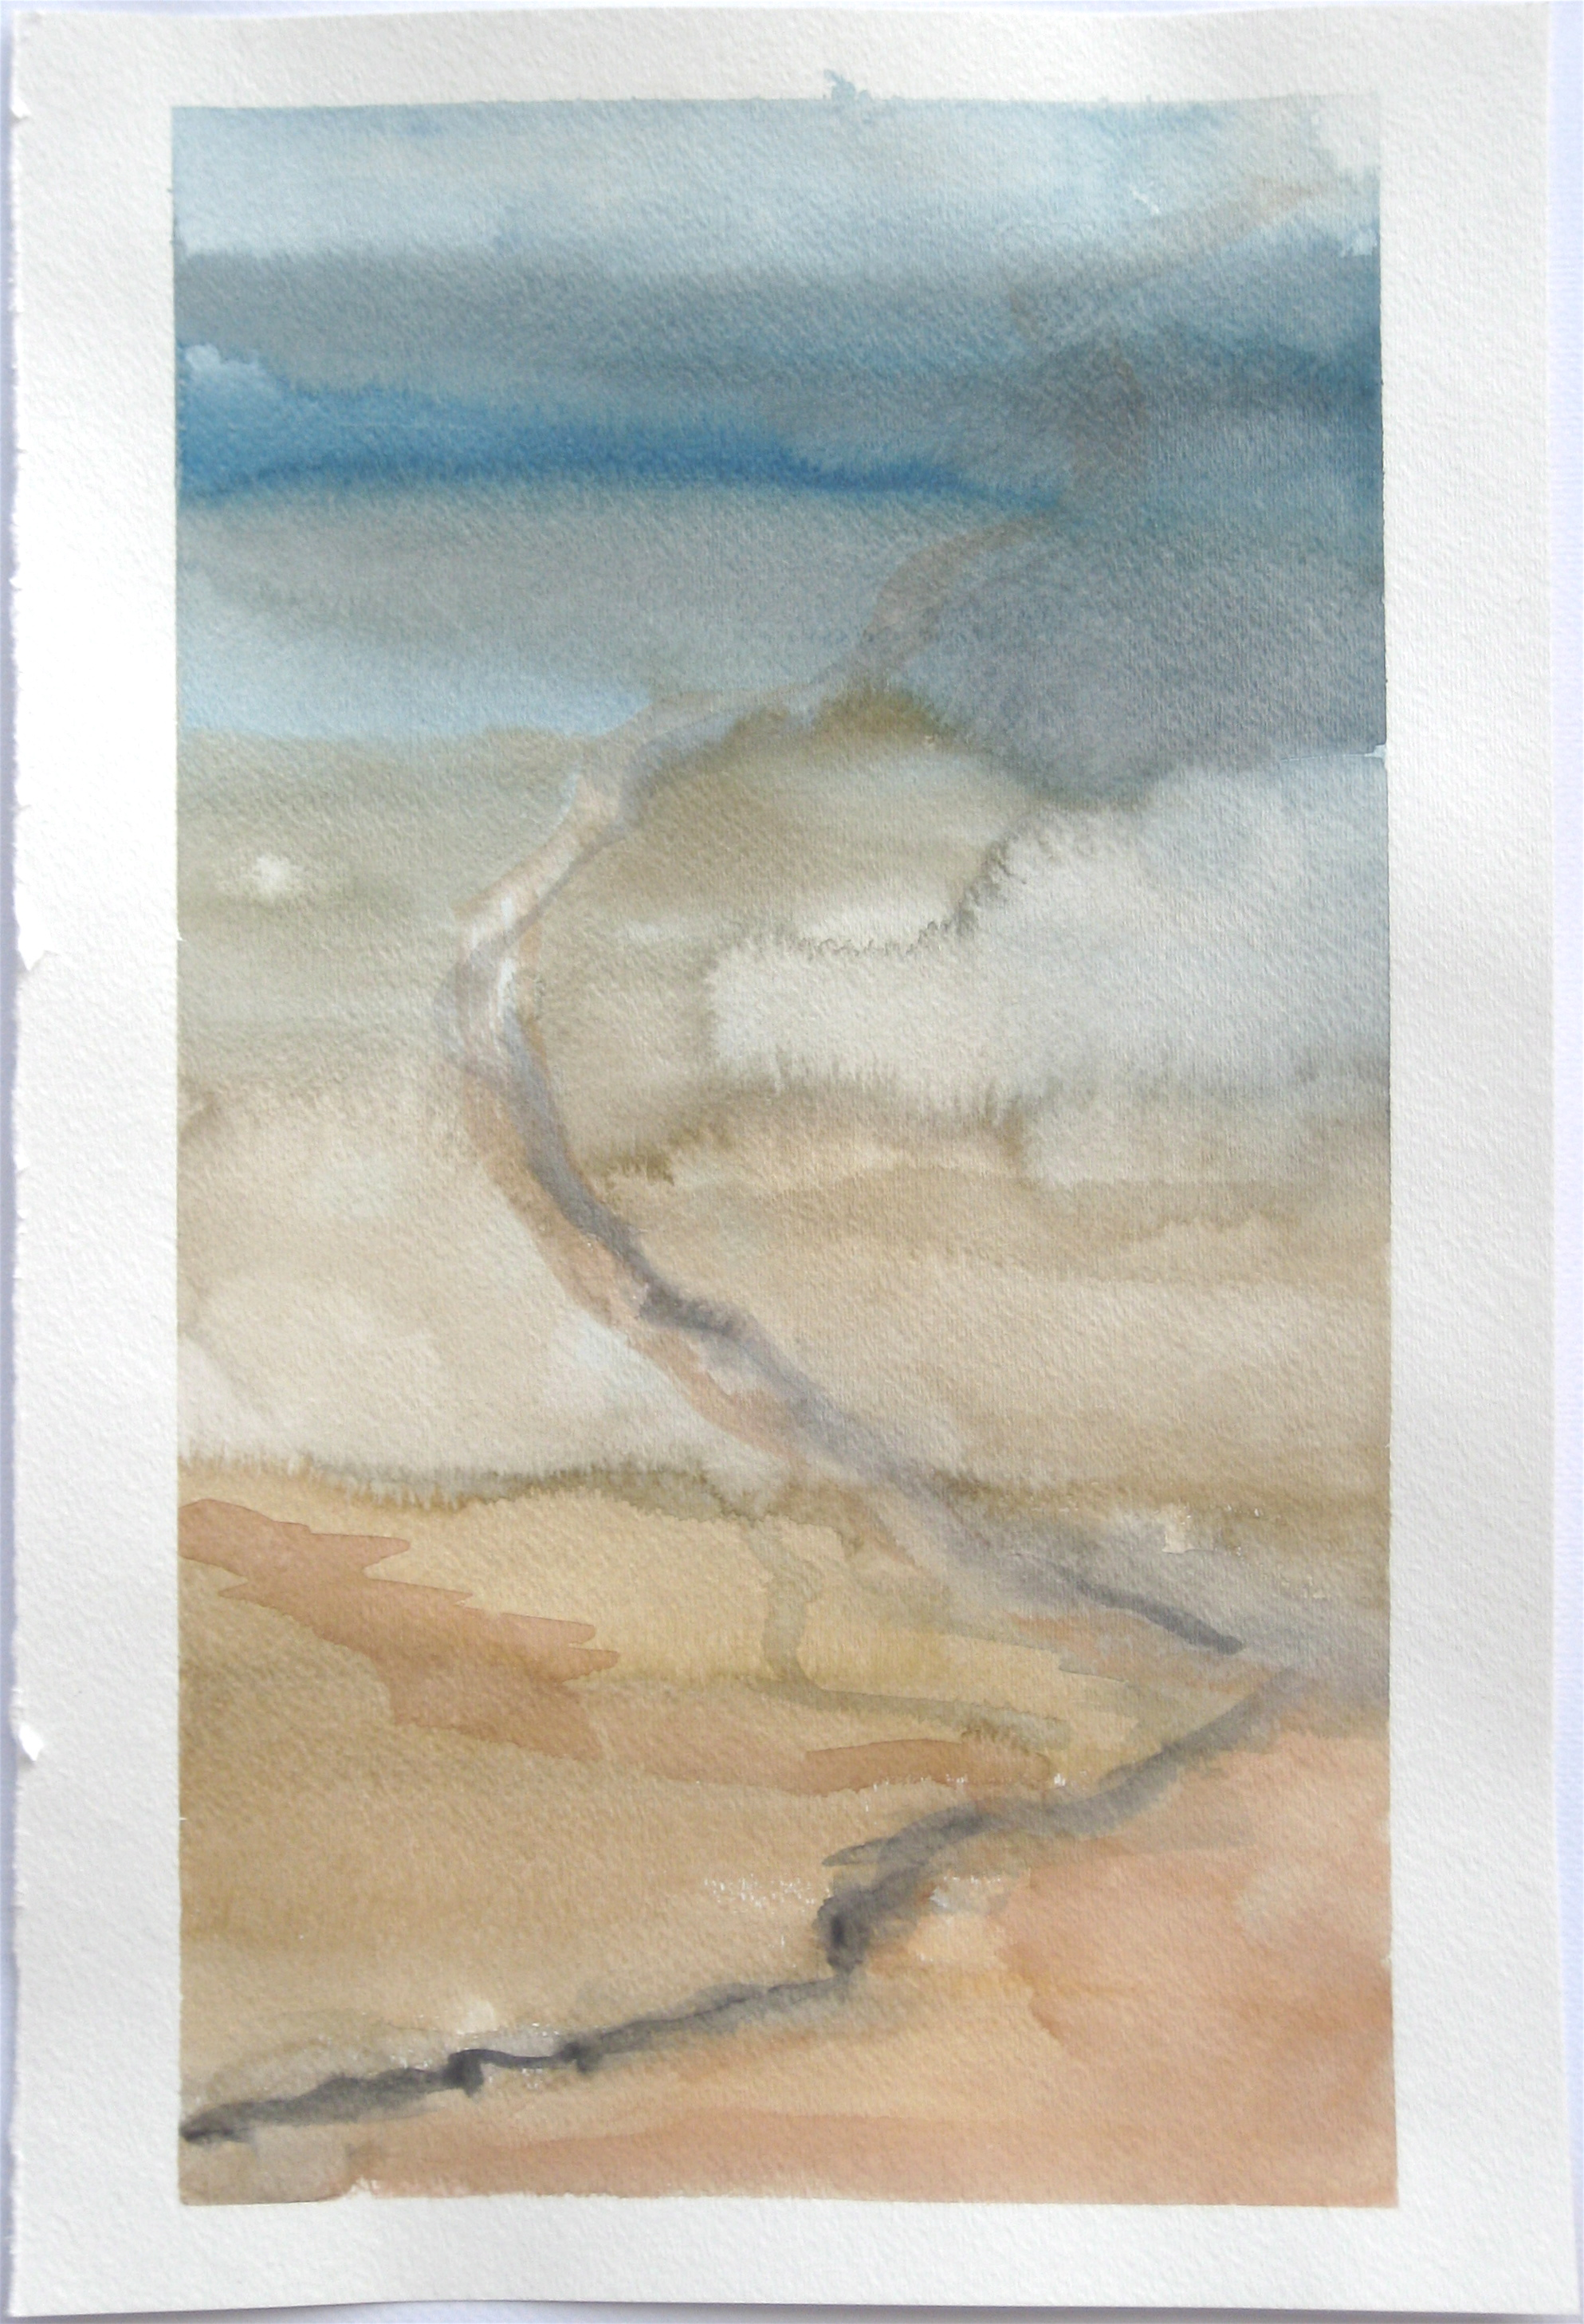 """Sky #9.4/2007, 2007, watercolor on paper paper: 18""""x12""""; image: 17""""x9 1/4"""""""